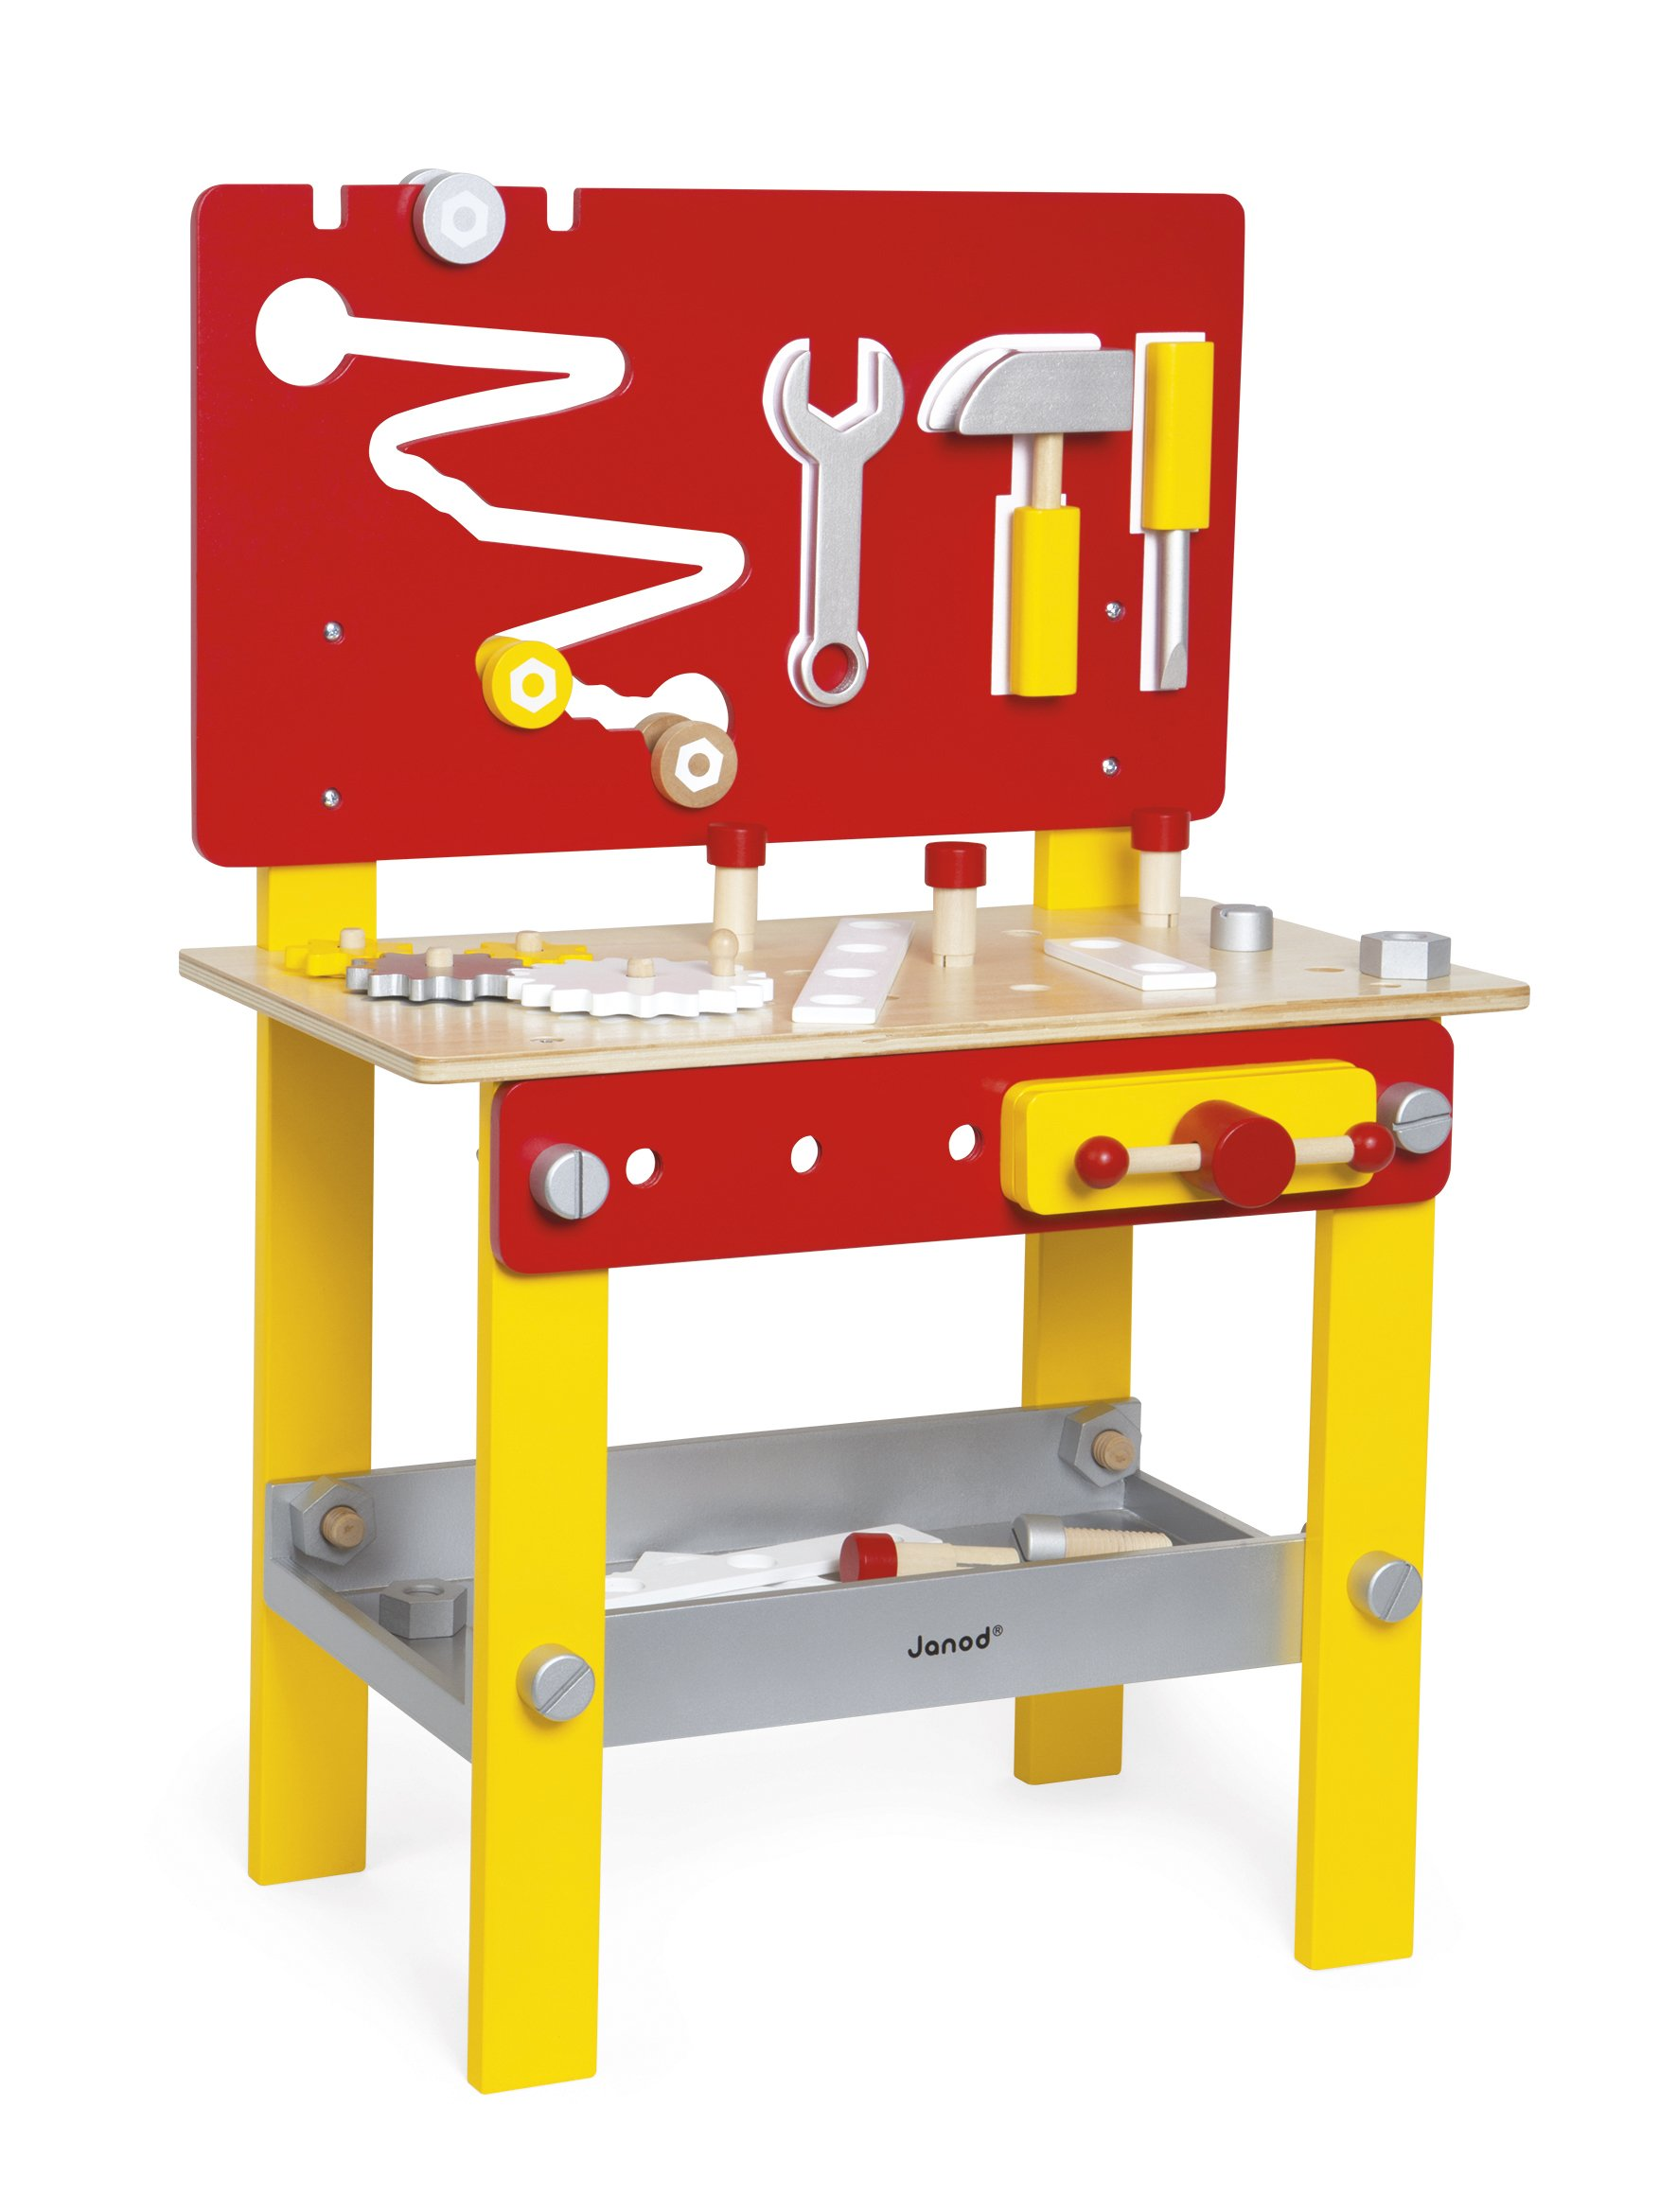 Janod Redmaster DIY Workbench